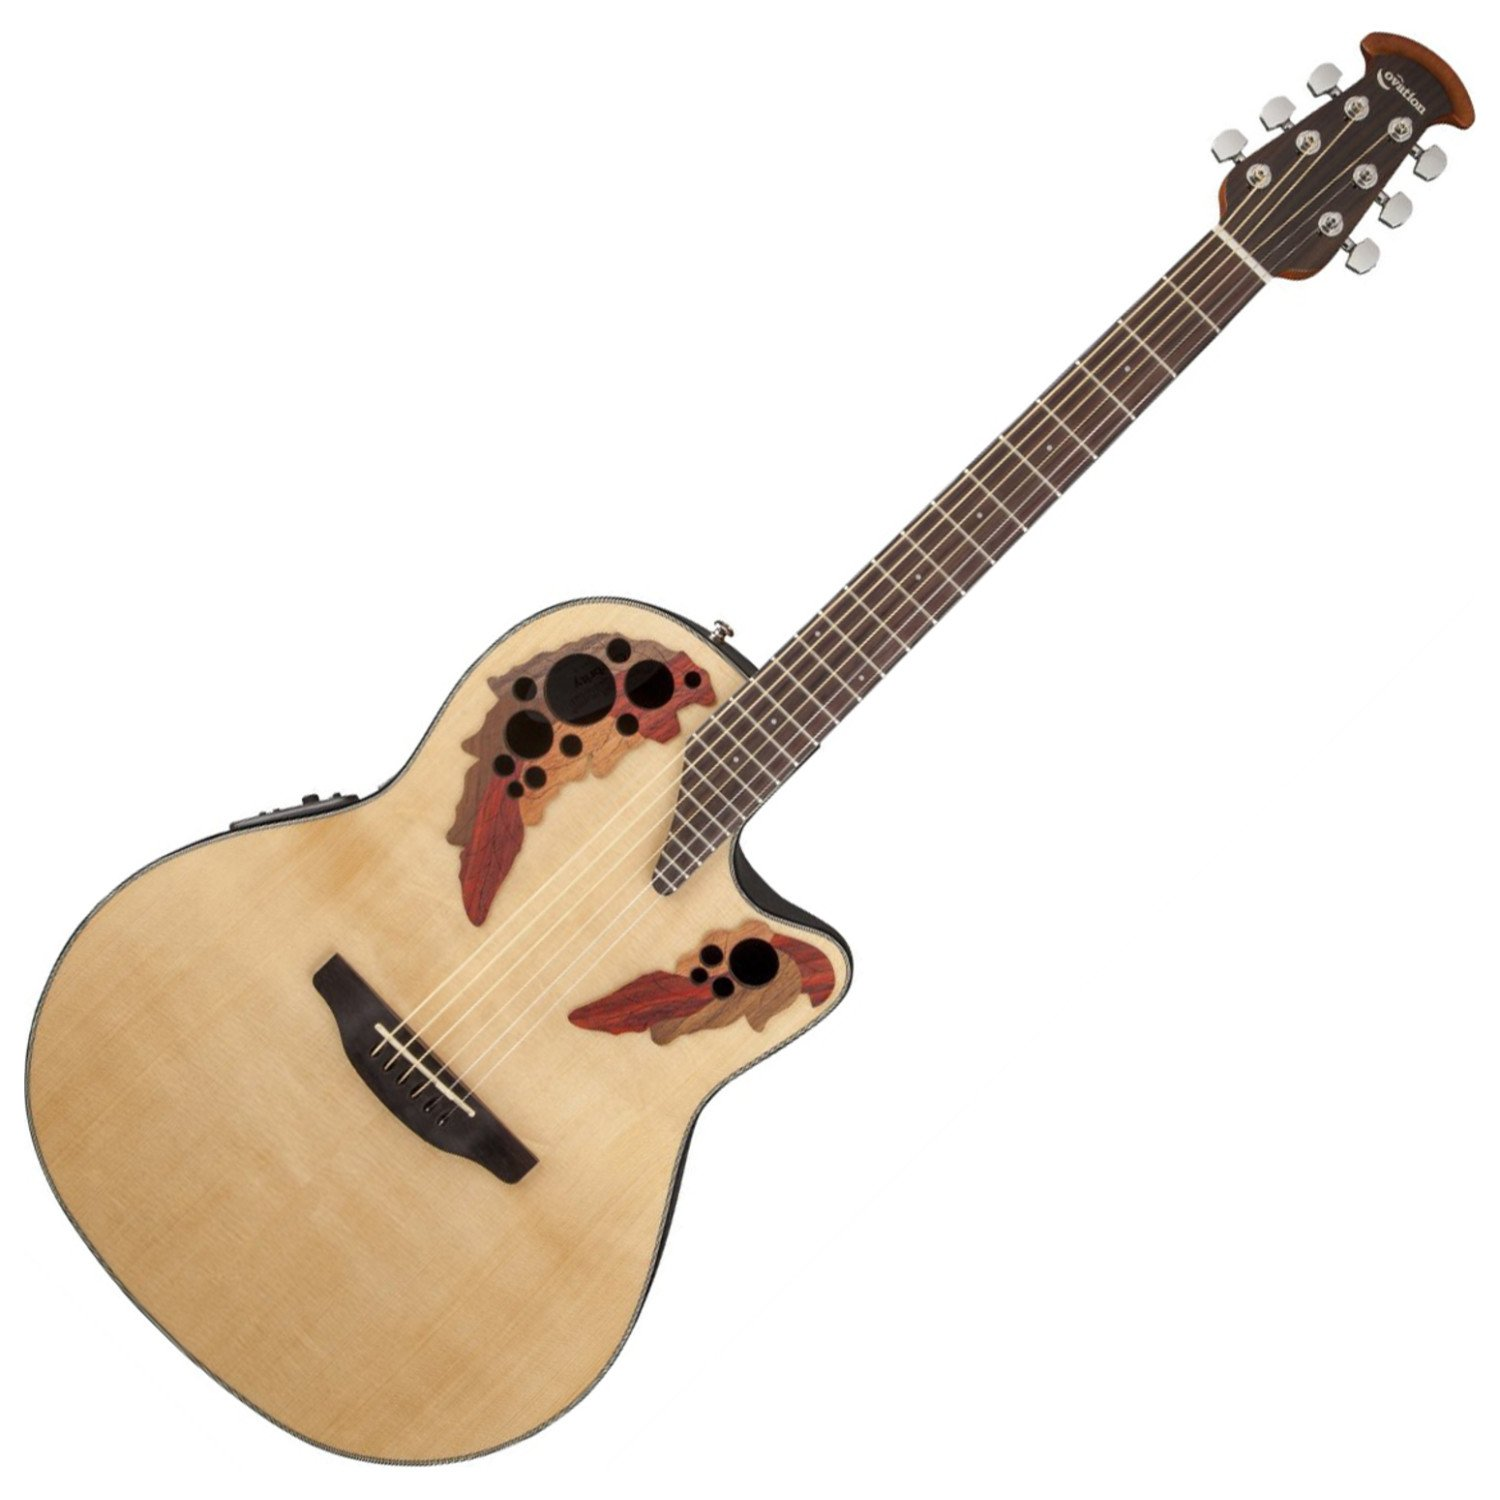 Ovation CE44-4 Acoustic-Electric Guitar, Natural by Ovation